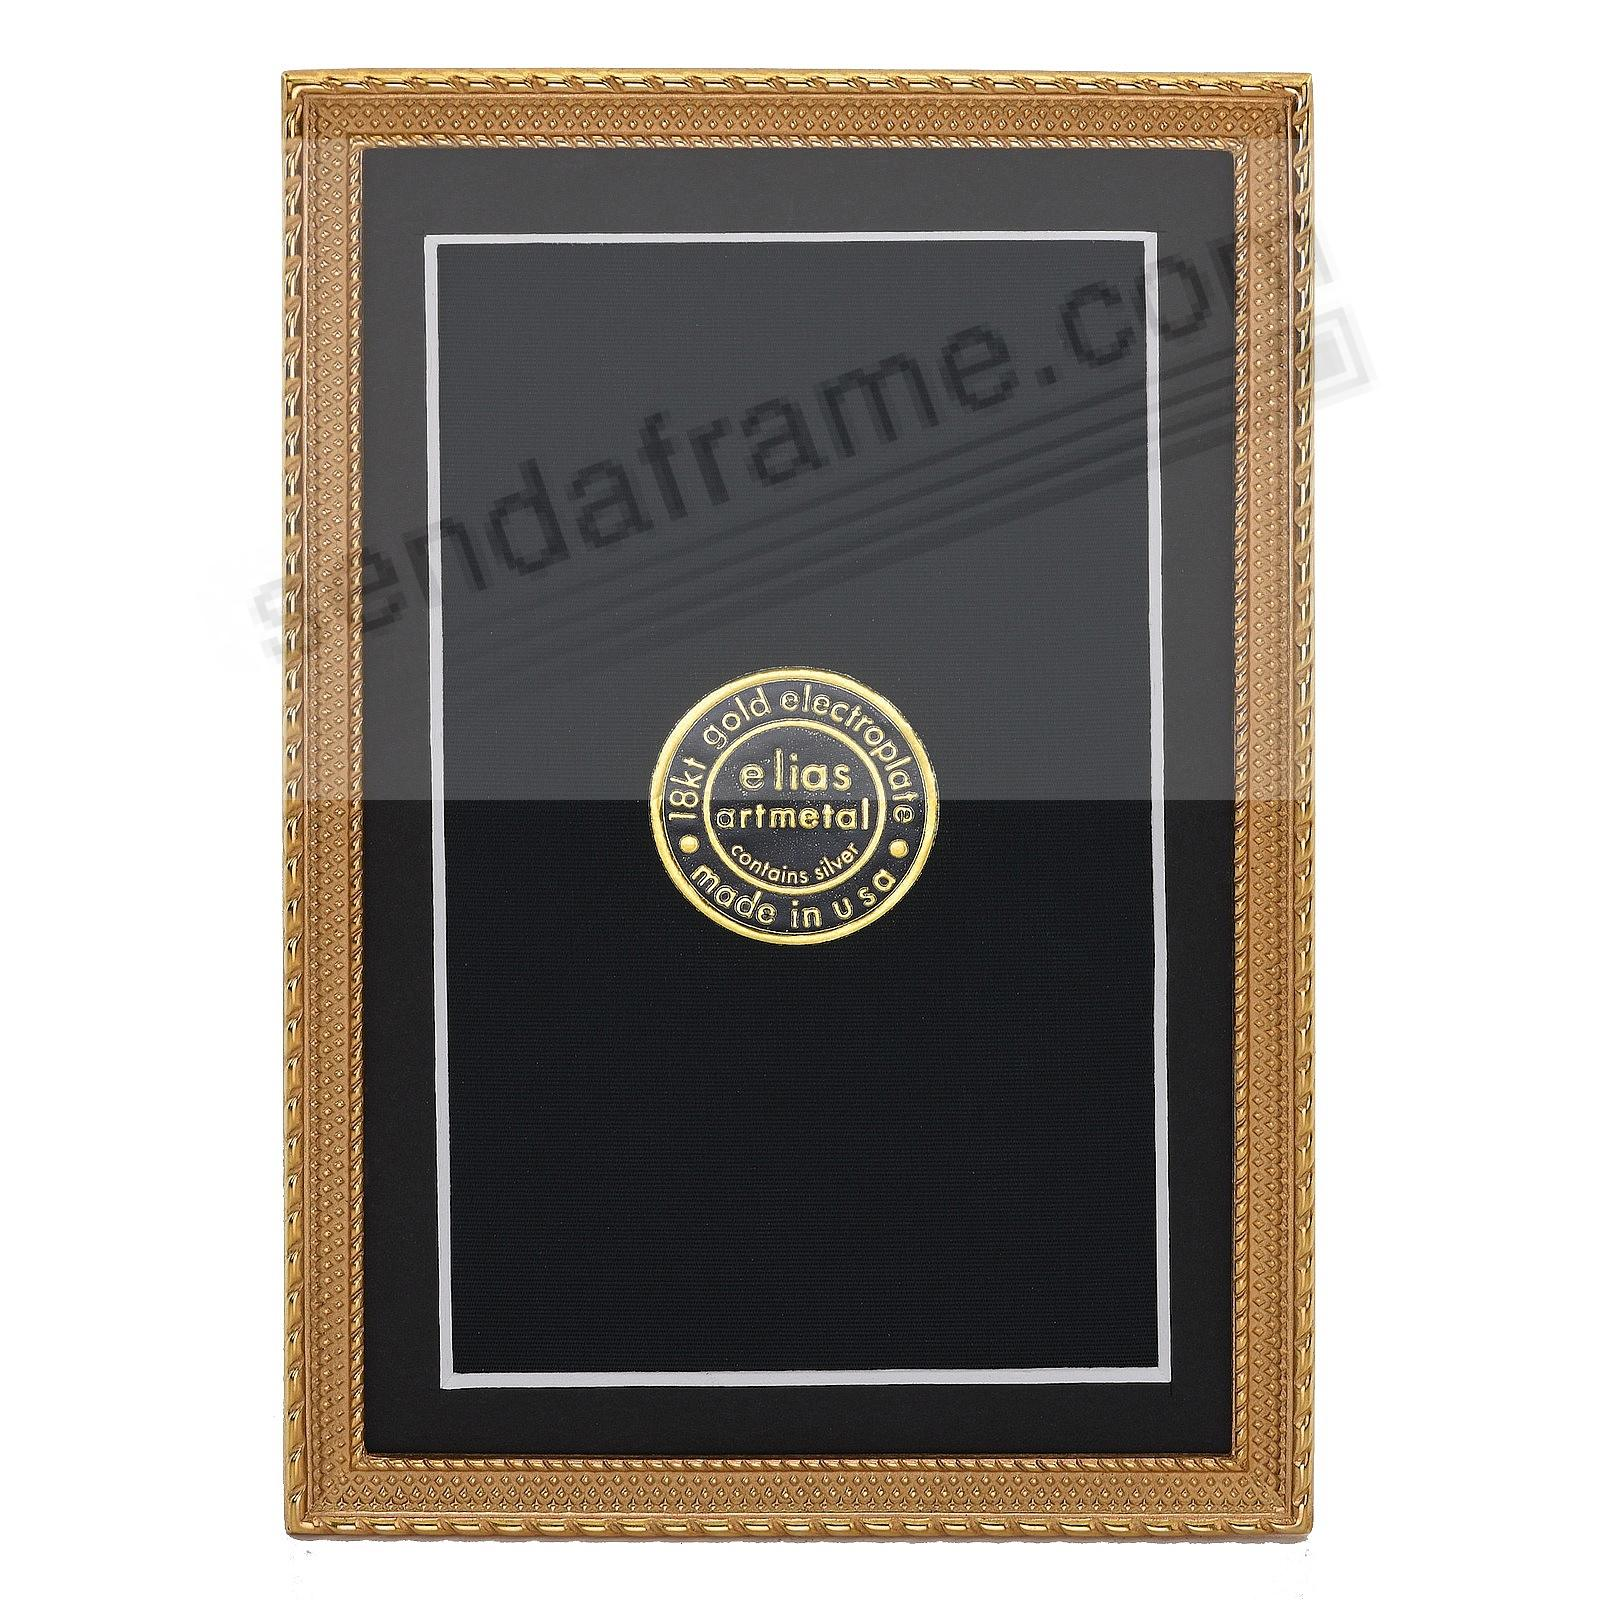 DOT-TO-DOT 18kt Gold Vermeil over fine Pewter 5x7/4½x6½ frame by Elias Artmetal®